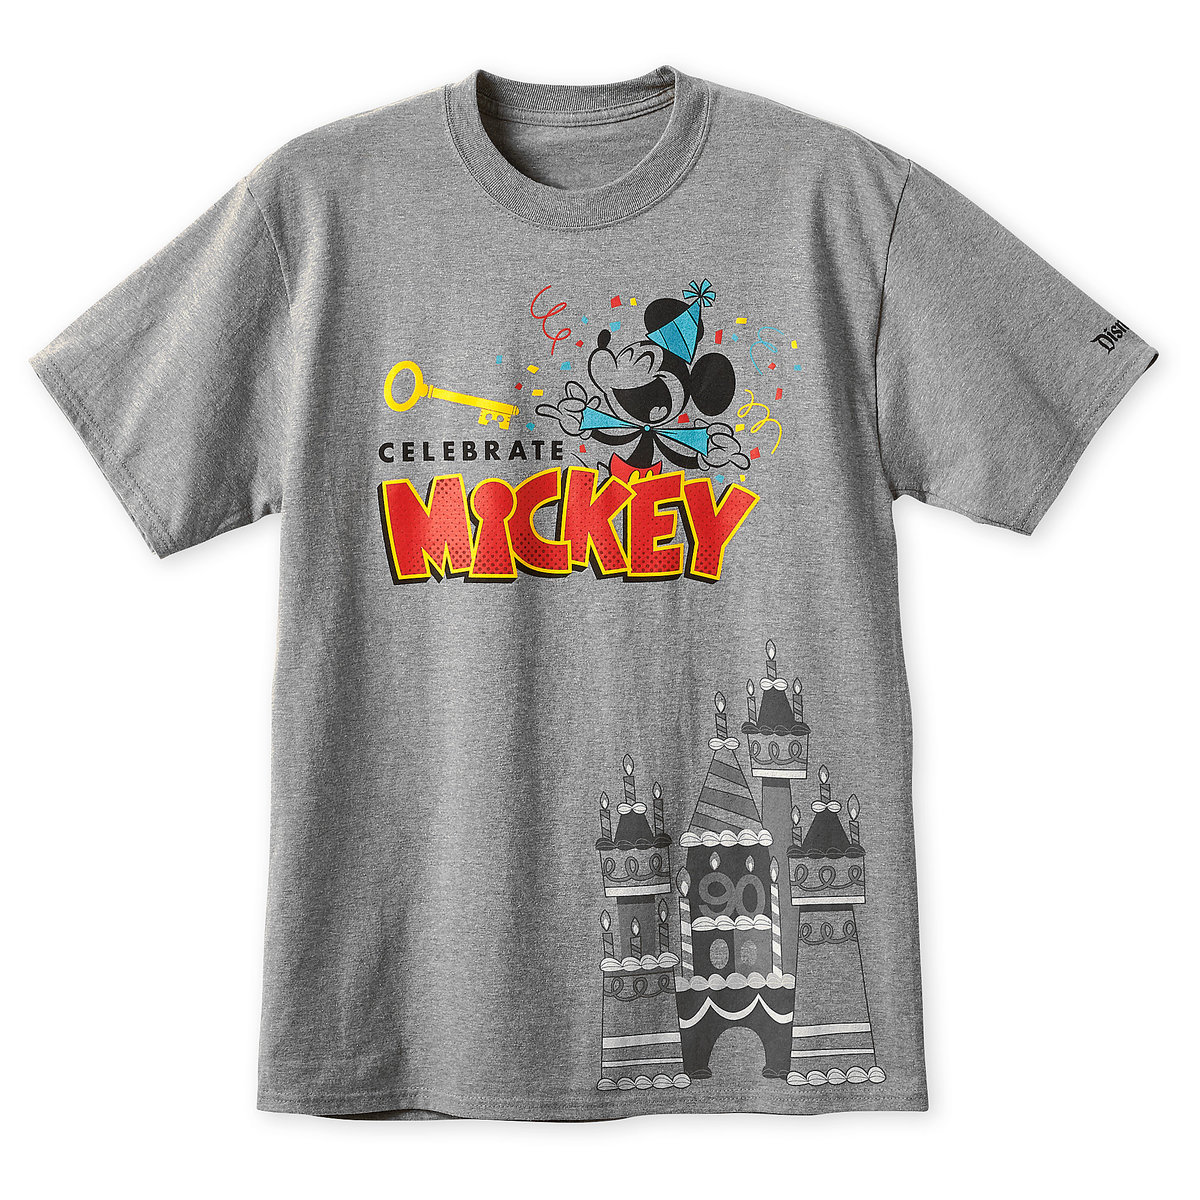 a37b03ae9 Product Image of Mickey Mouse ''Celebrate Mickey'' T-Shirt for Men